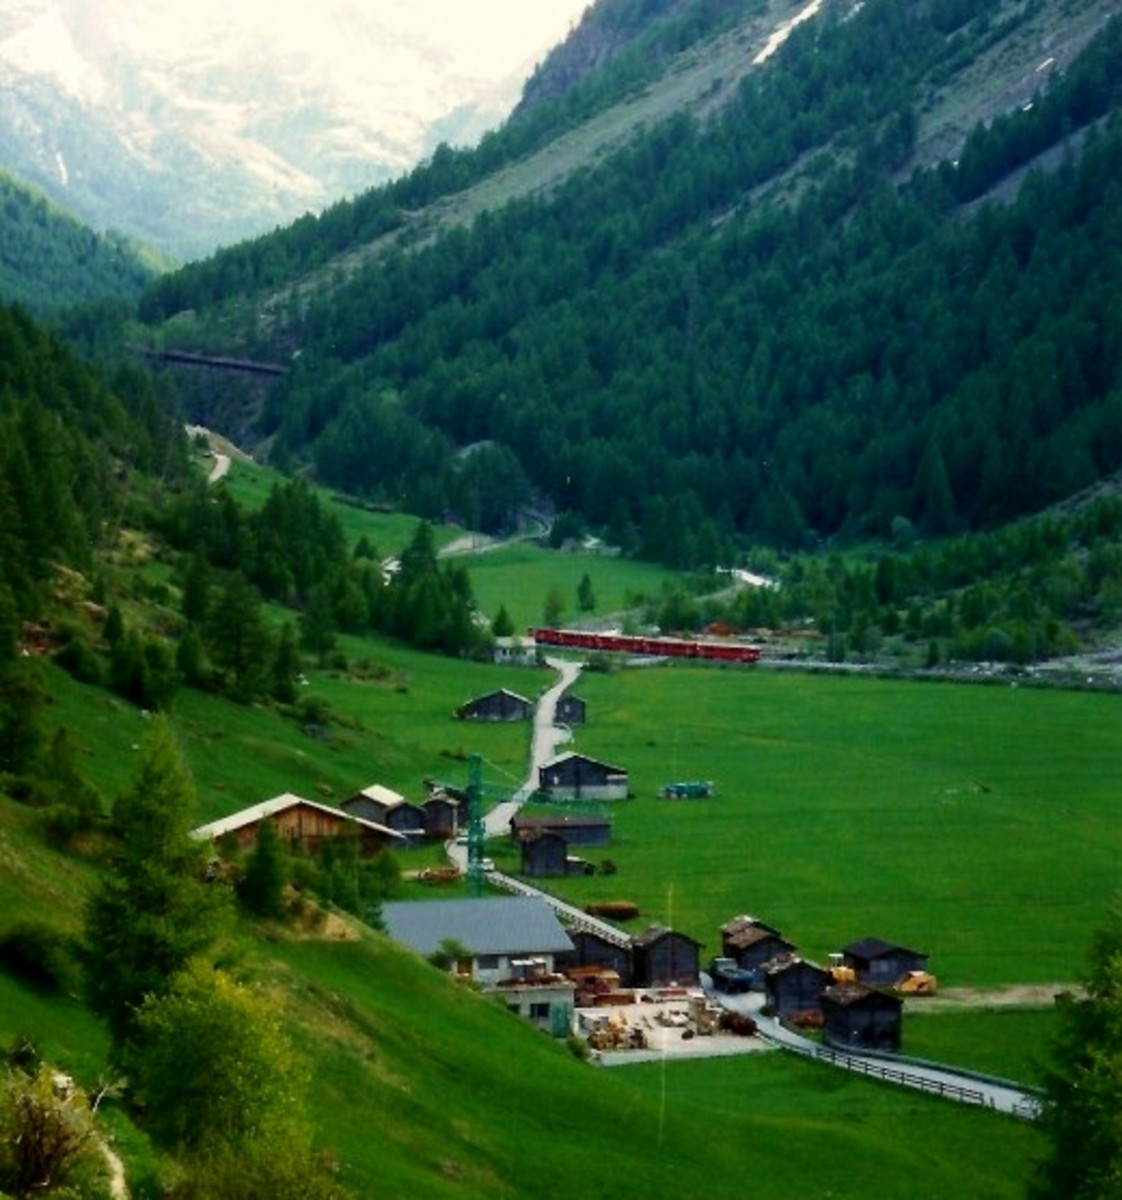 Tasch, Switzerland is situated in a valley.